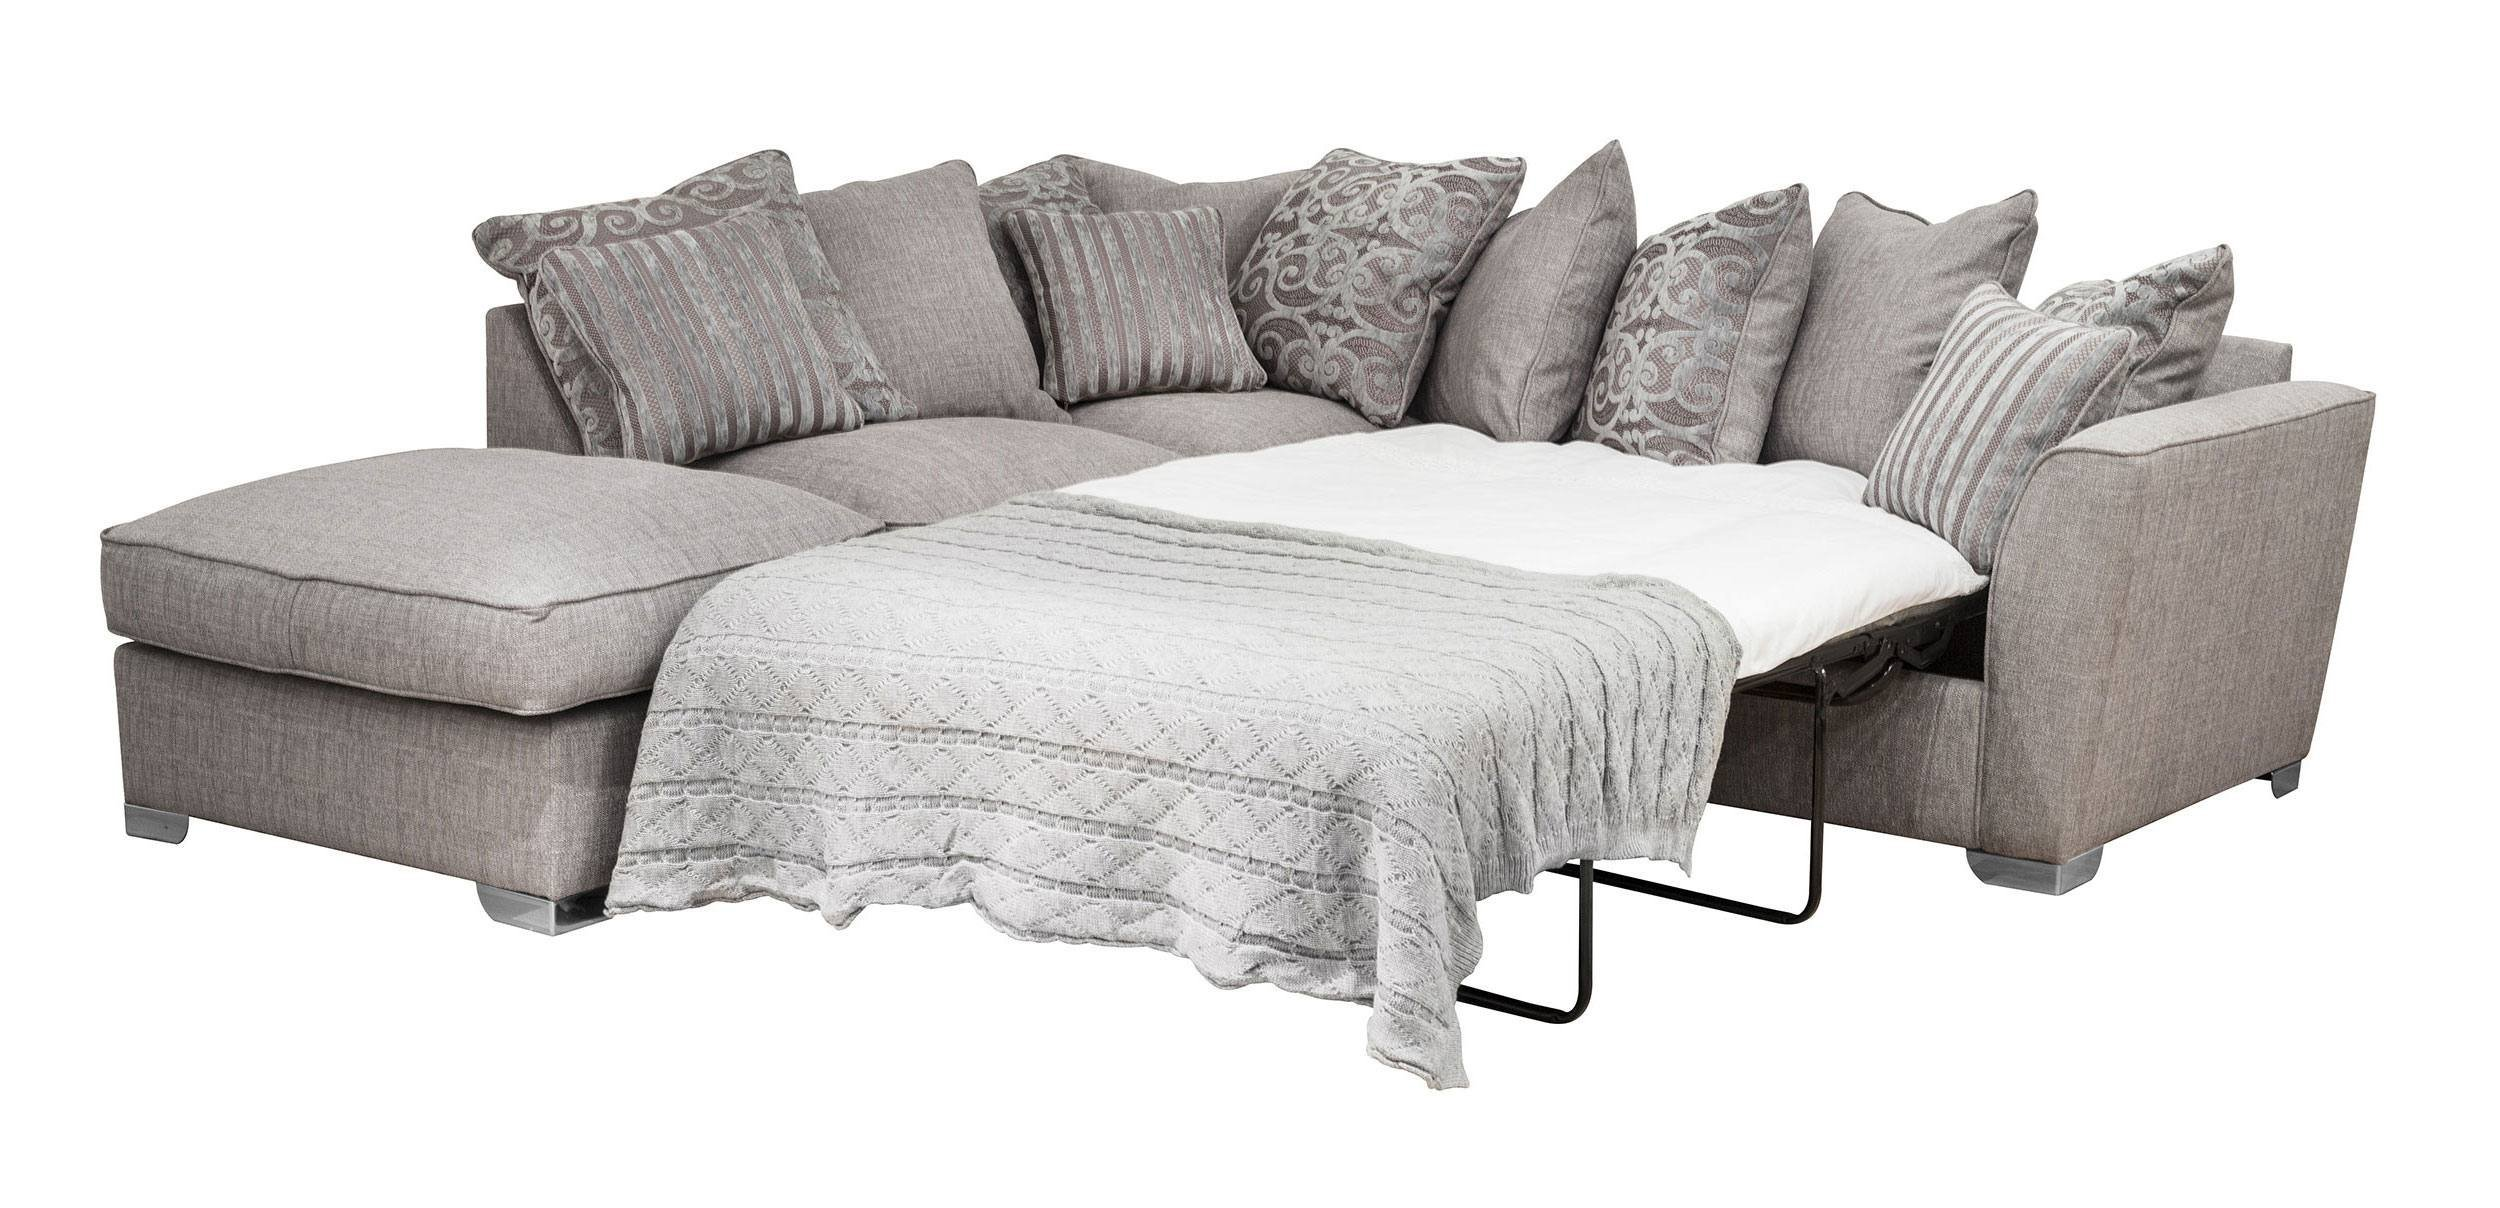 Picture of: Buoyant Atlantis Corner Sofa Bed Uk S Best Deal Promise Claytons Carpets Lincoln